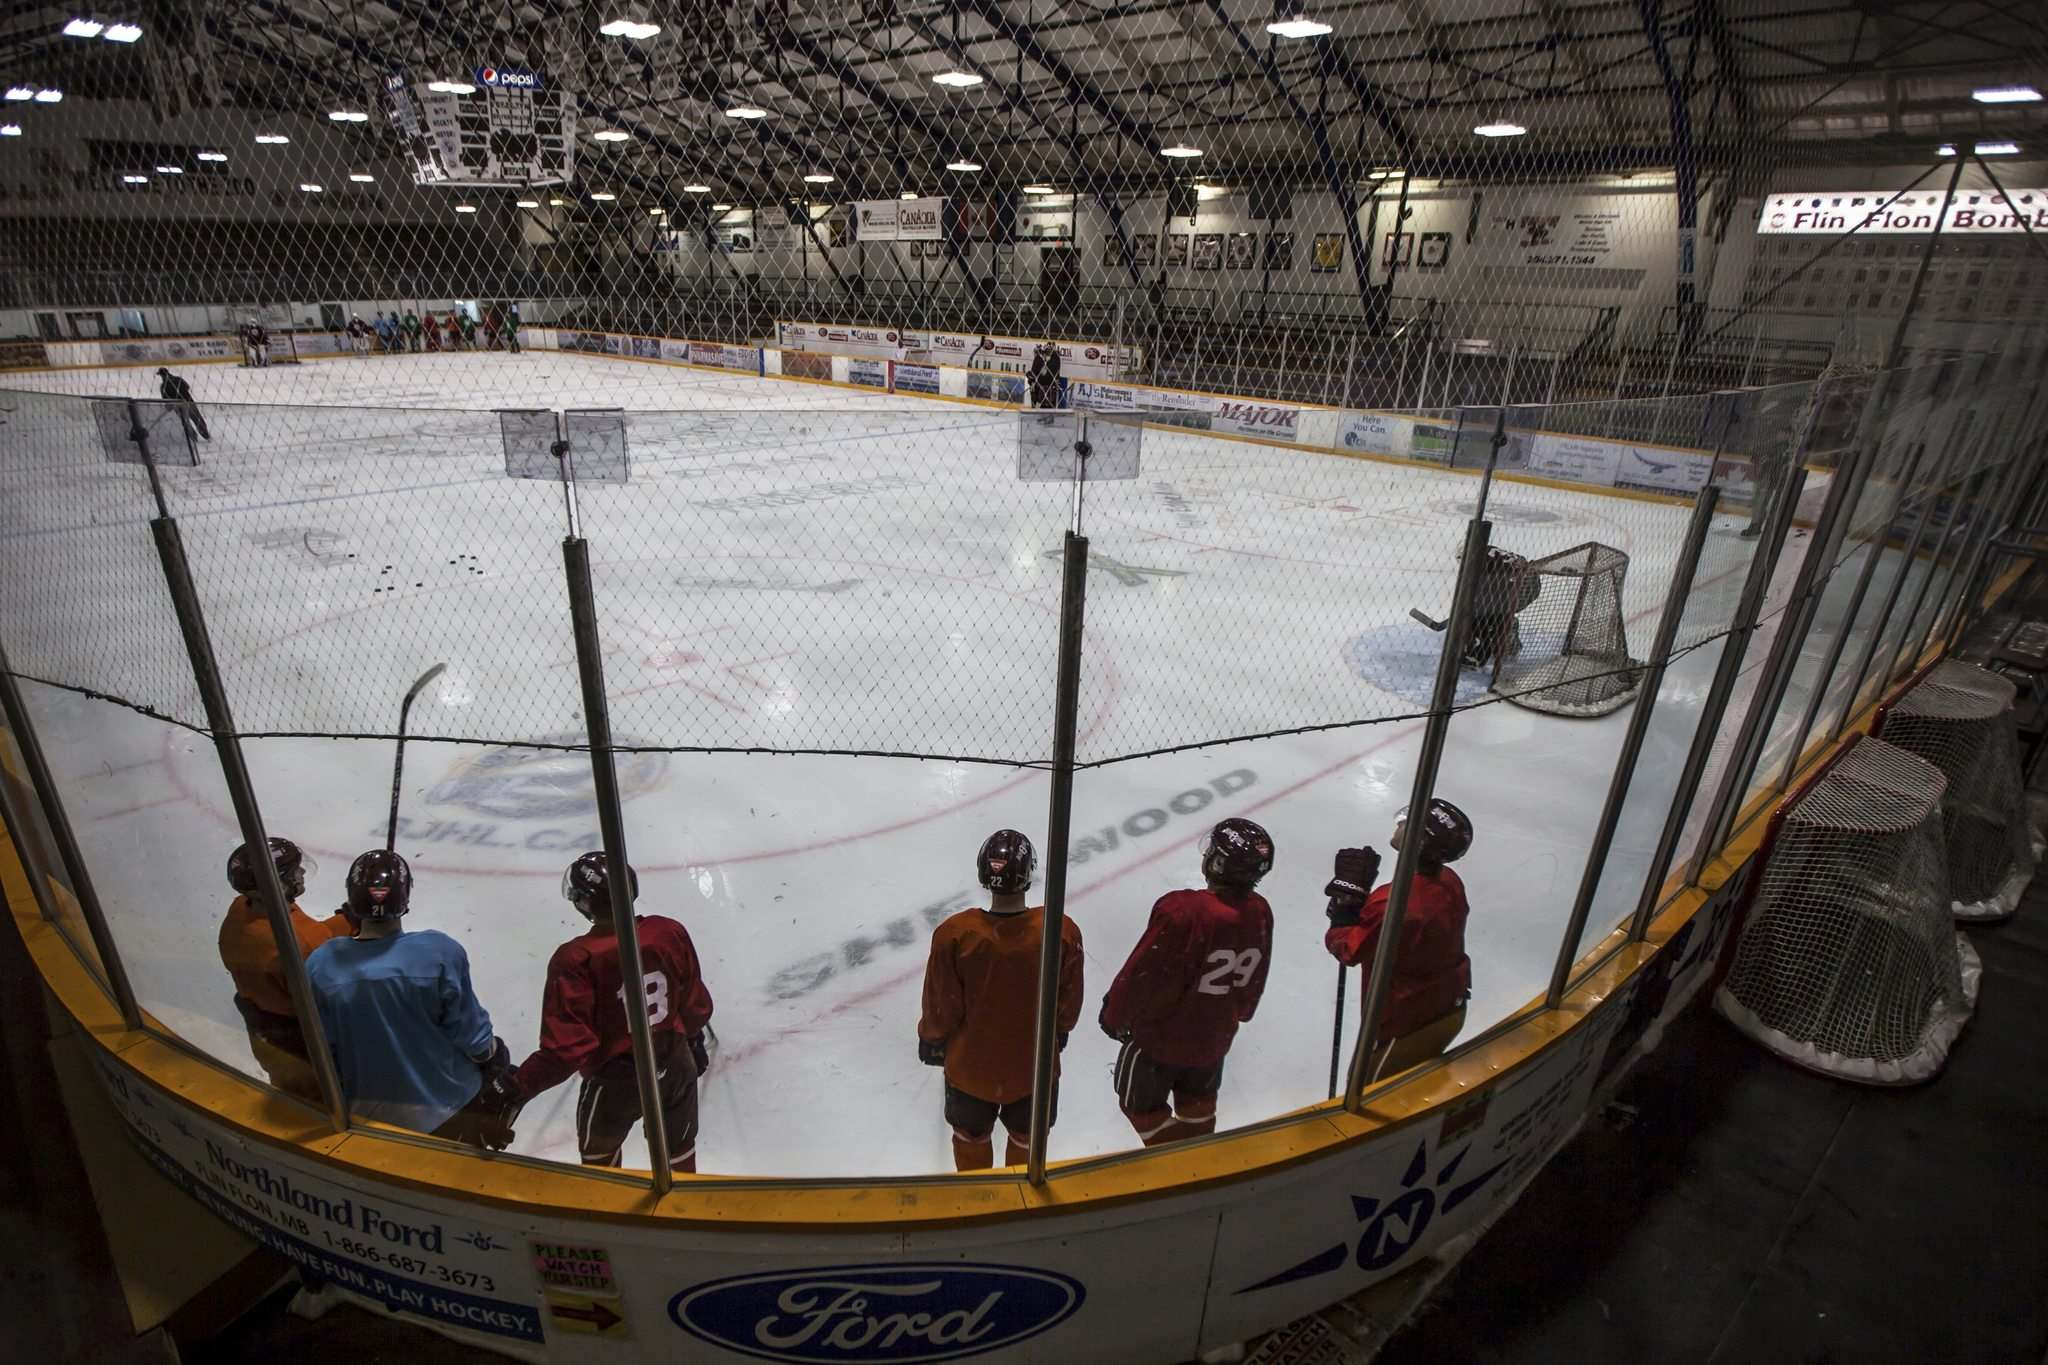 Located minutes from the Saskatchewan border, the Bombers, for practical purposes, have played in the SJHL by special agreement with Hockey Manitoba since 1984.